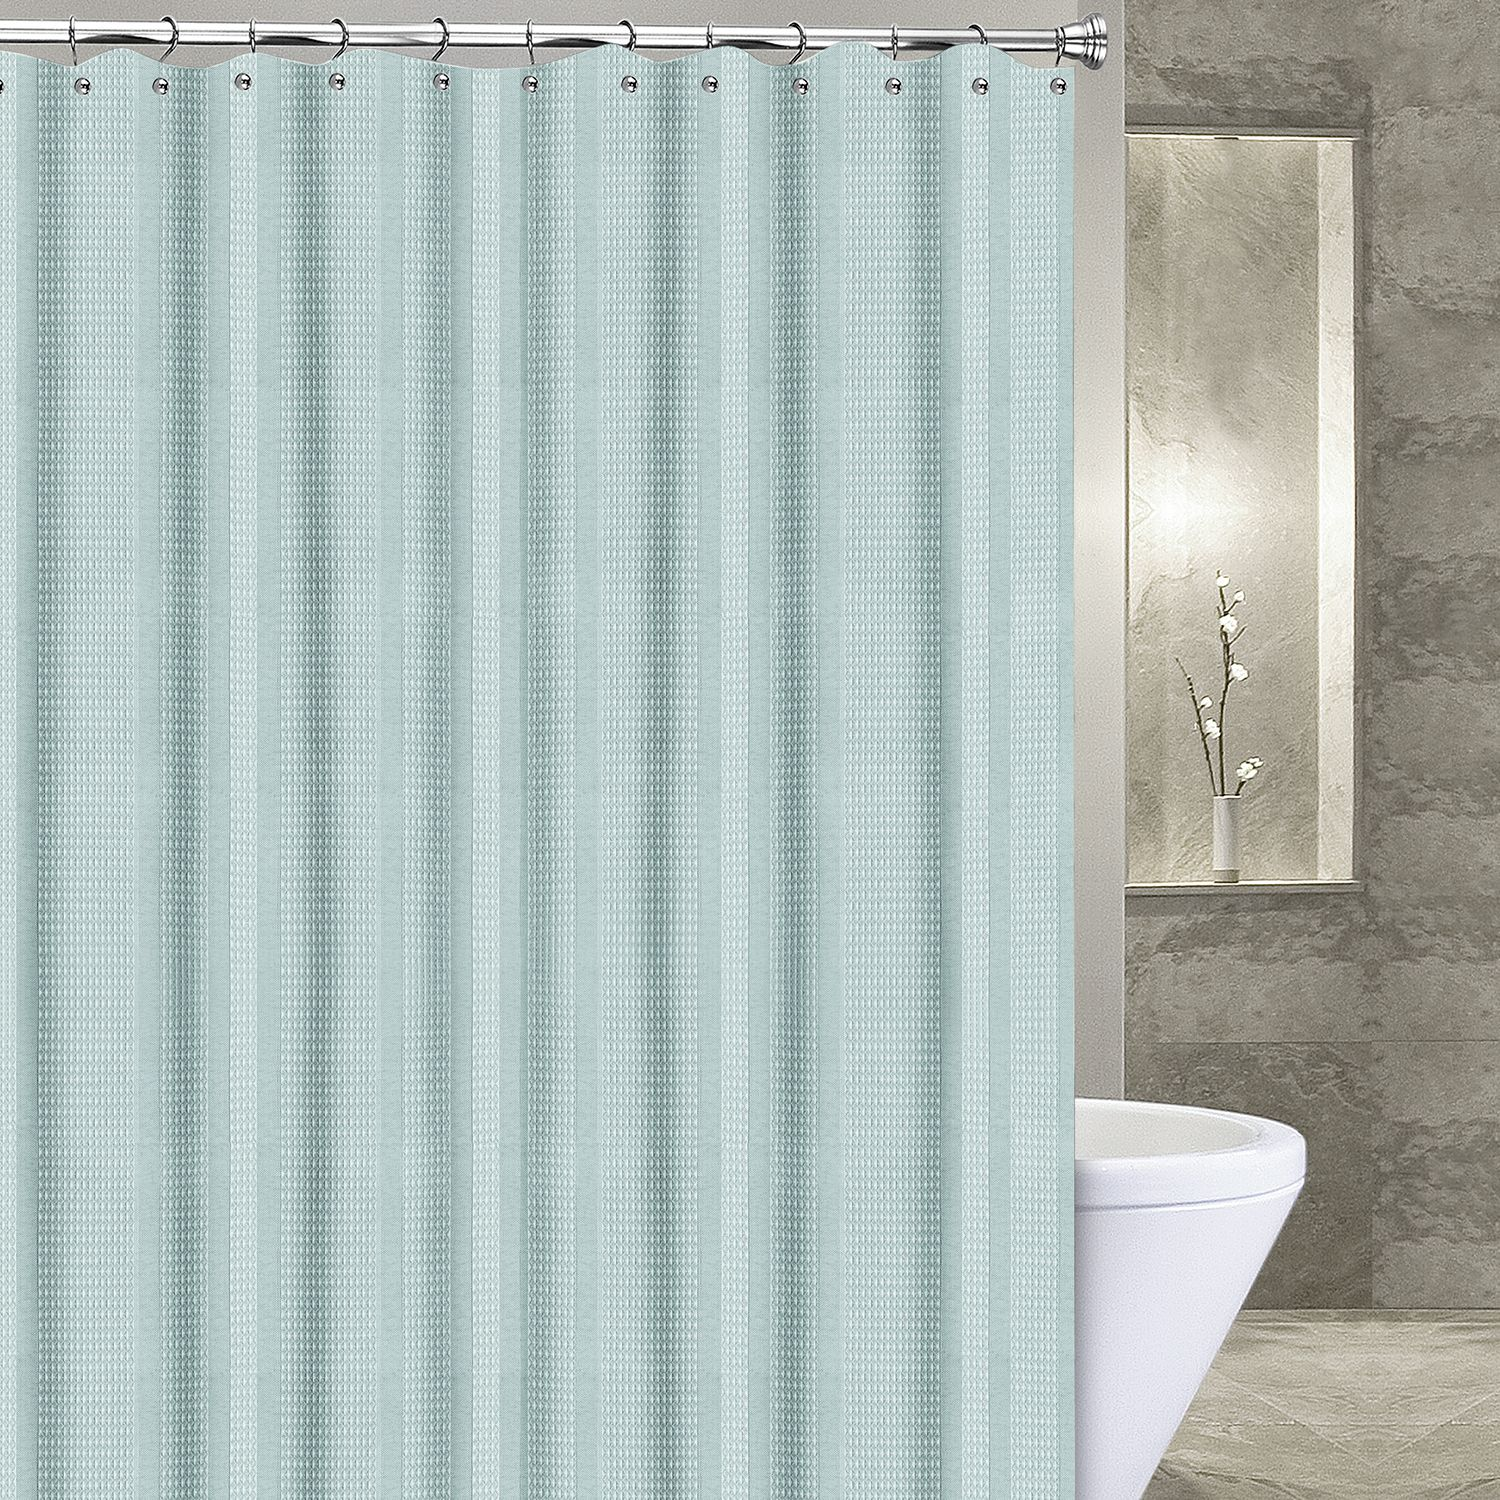 Glass Shower Curtains Popular Bath Products Waffle Stripe 6 X 6 Shower Curtain